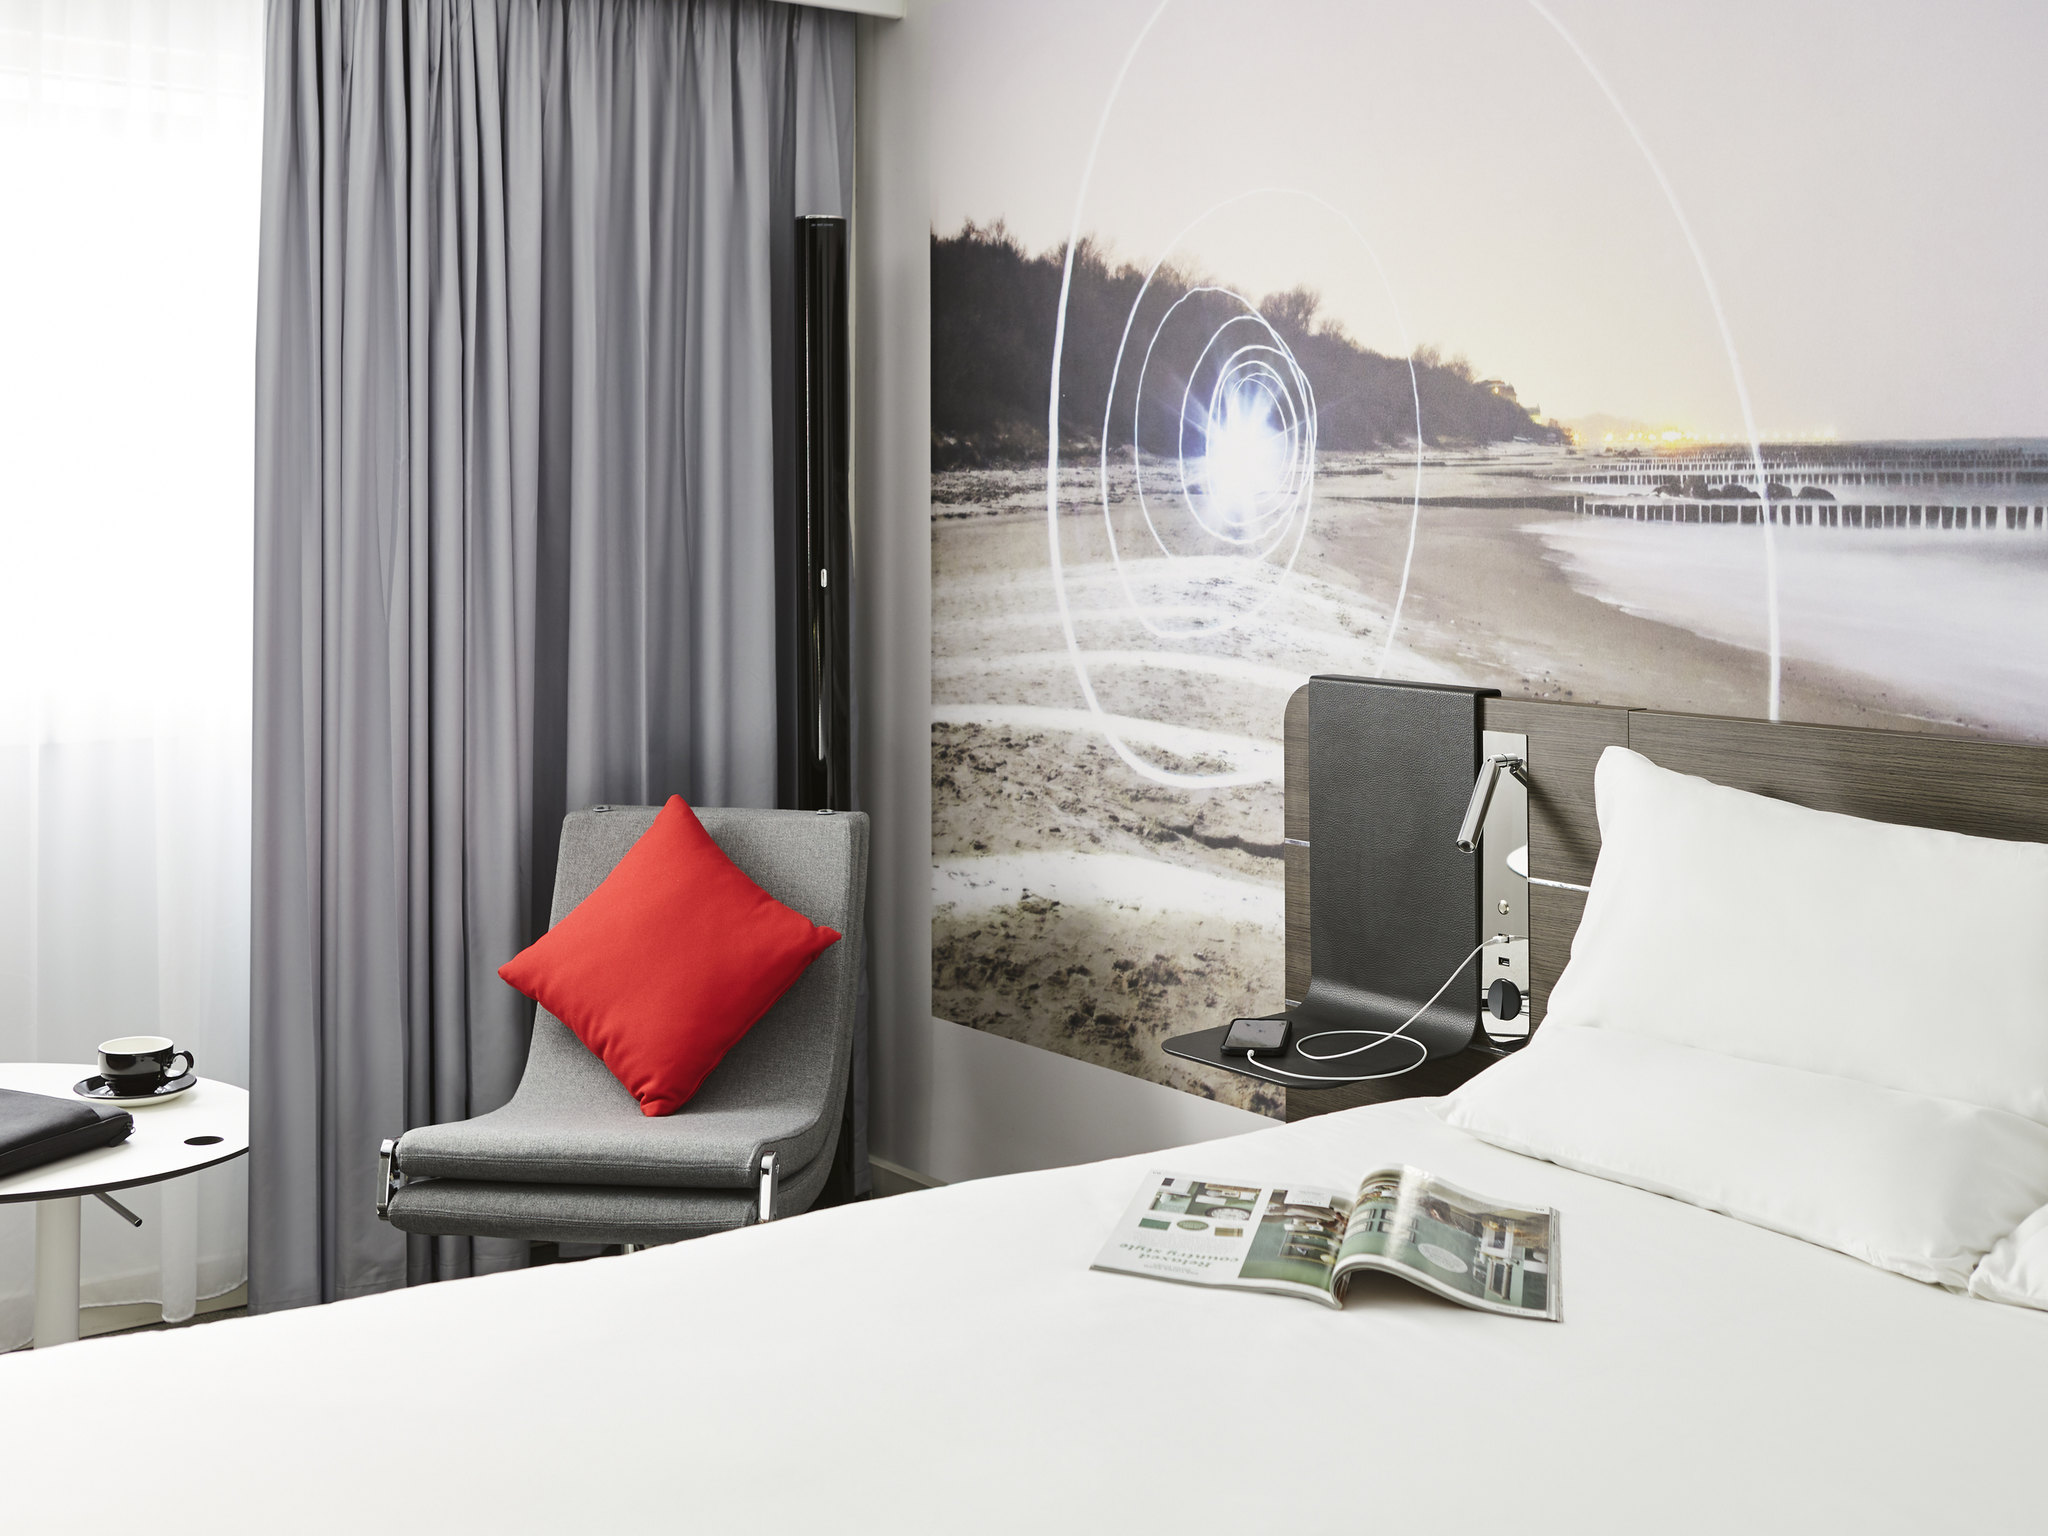 Novotel birmingham airport relaxing hotel inbirmingham hotel novotel birmingham airport kristyandbryce Choice Image